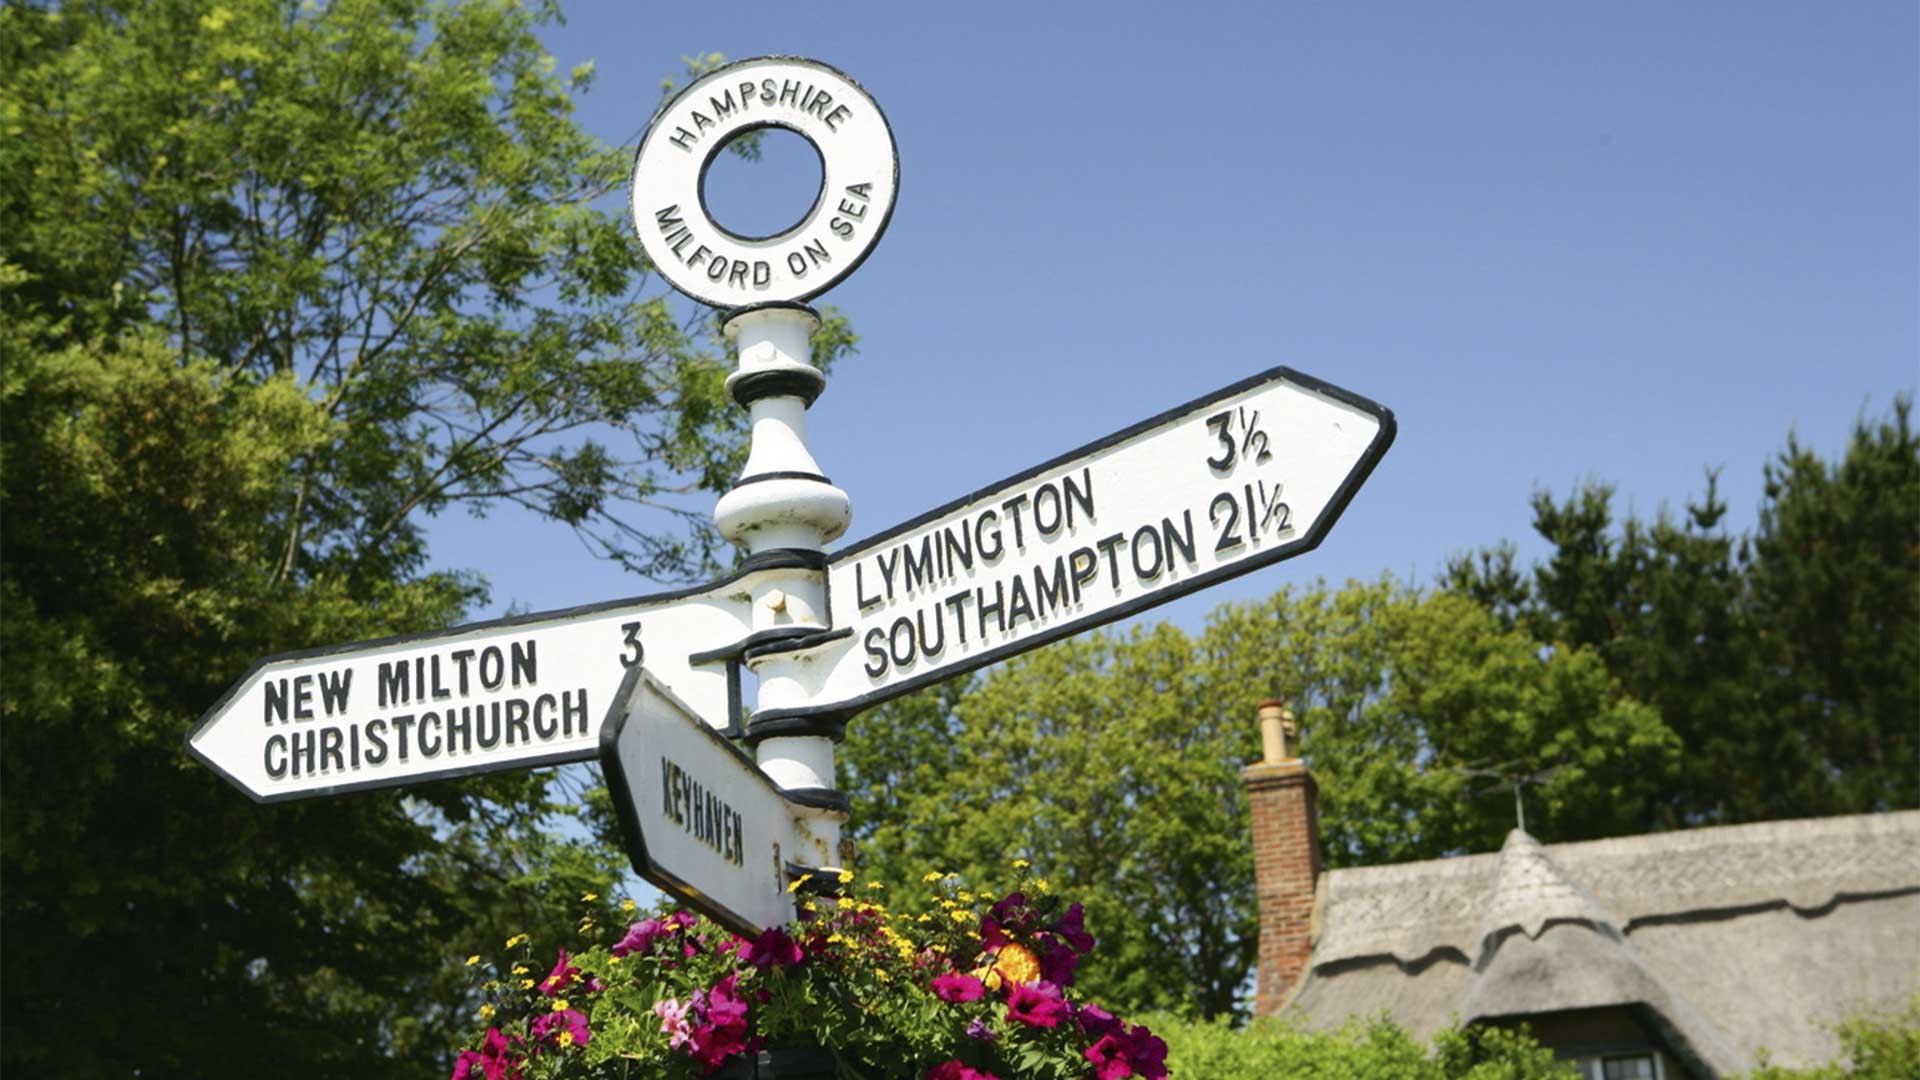 Signpost pointing to Lymington in the New Forest, UK